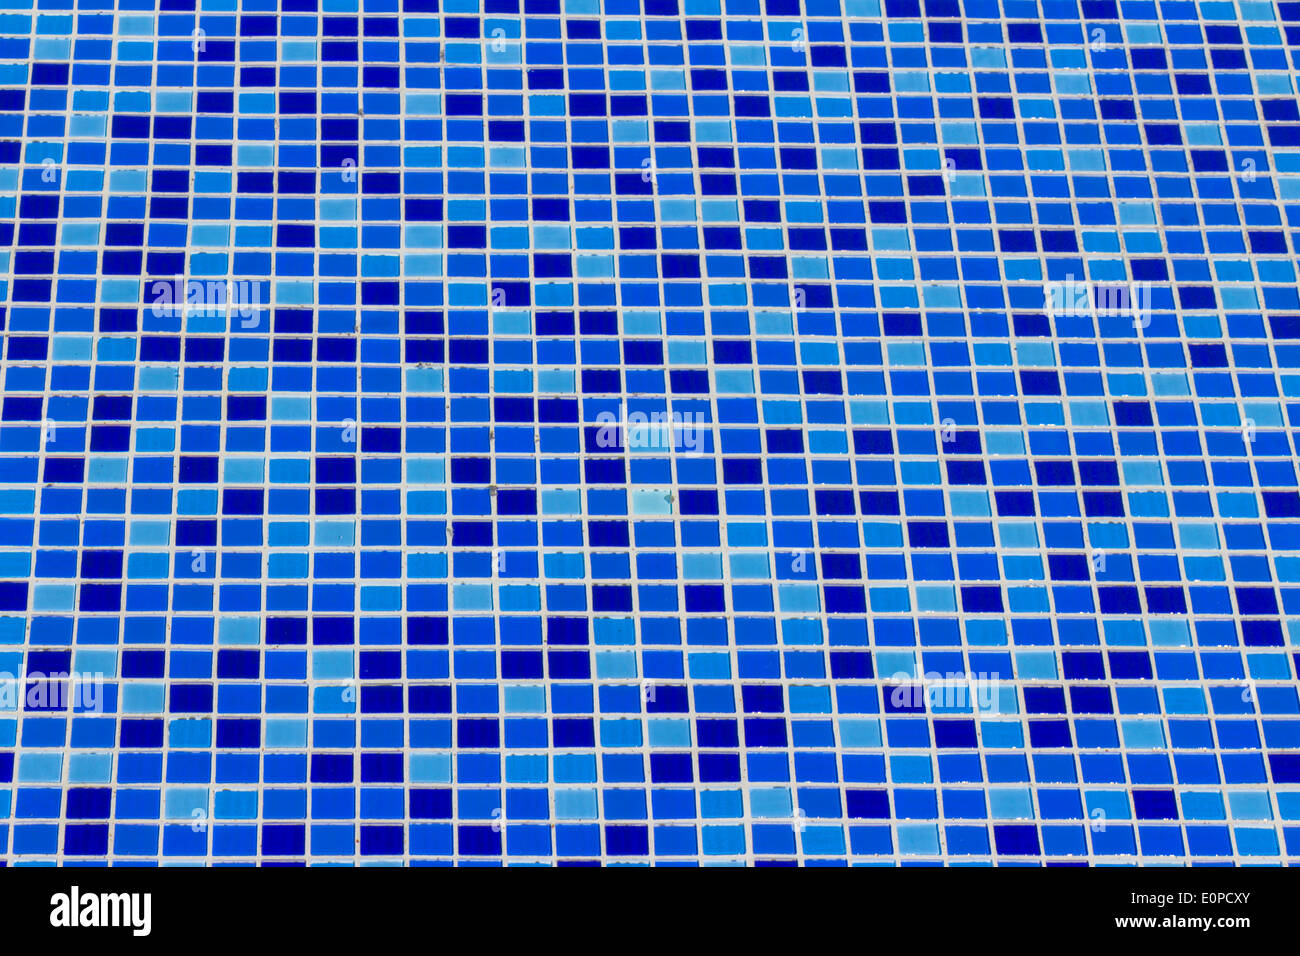 Ceramic tile mosaic in swimming pool seamless texture stock ceramic tile mosaic in swimming pool seamless texture doublecrazyfo Image collections